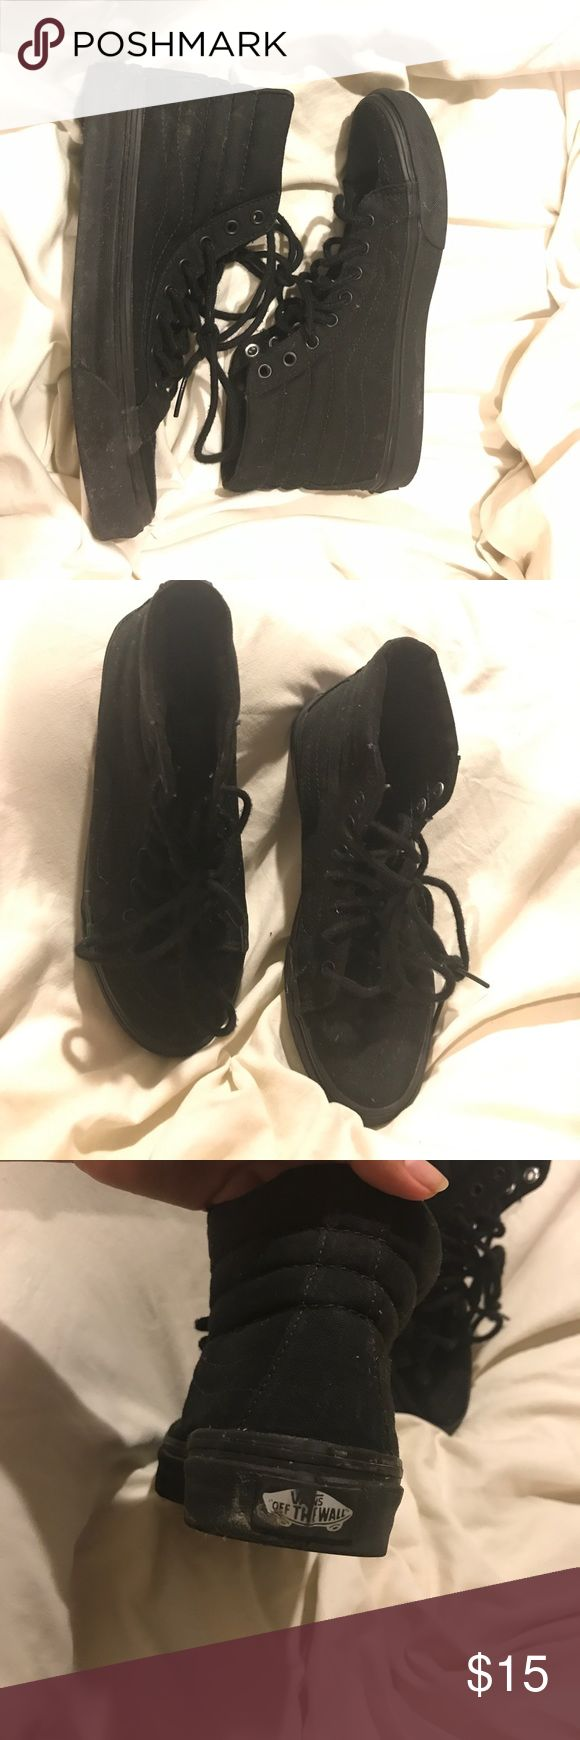 All Black High Tops Off The Wall Vans Worn a few times but they were too small for me! I am a size 8 and these are a 7.5. Great shoes though!! Vans Shoes Sneakers